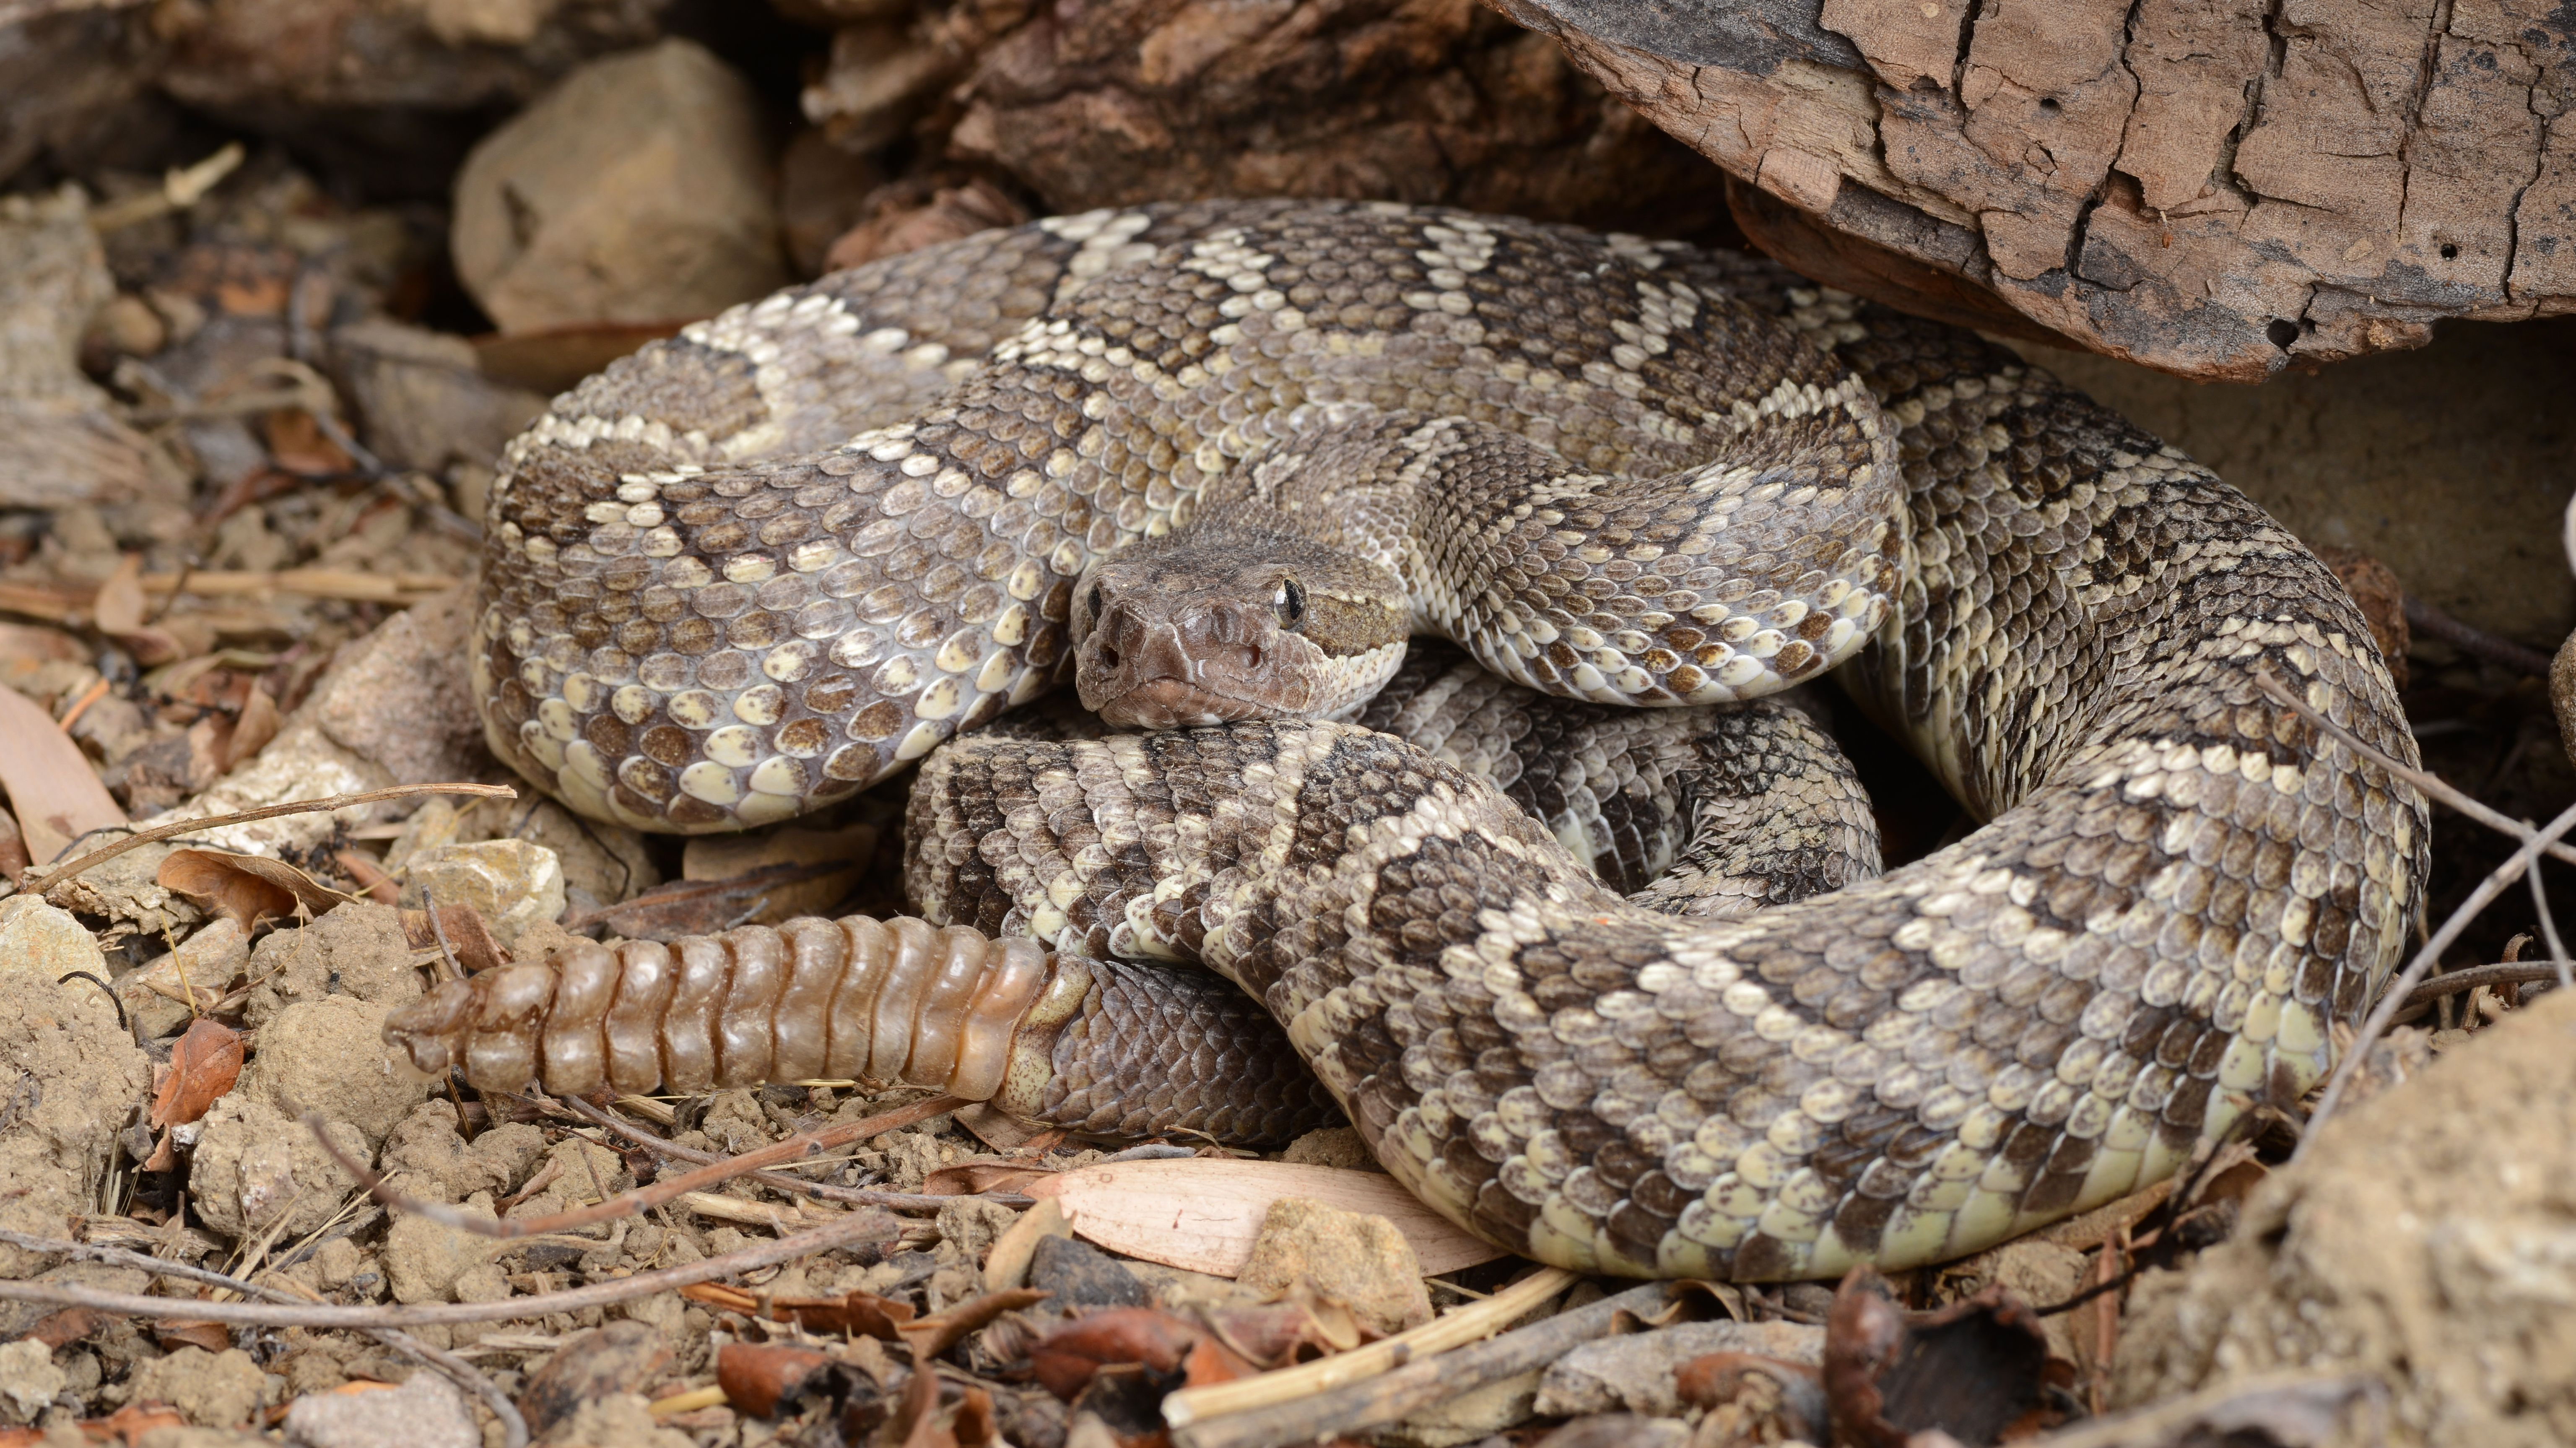 12 Things You Should Know About Rattlesnakes | Mental Floss